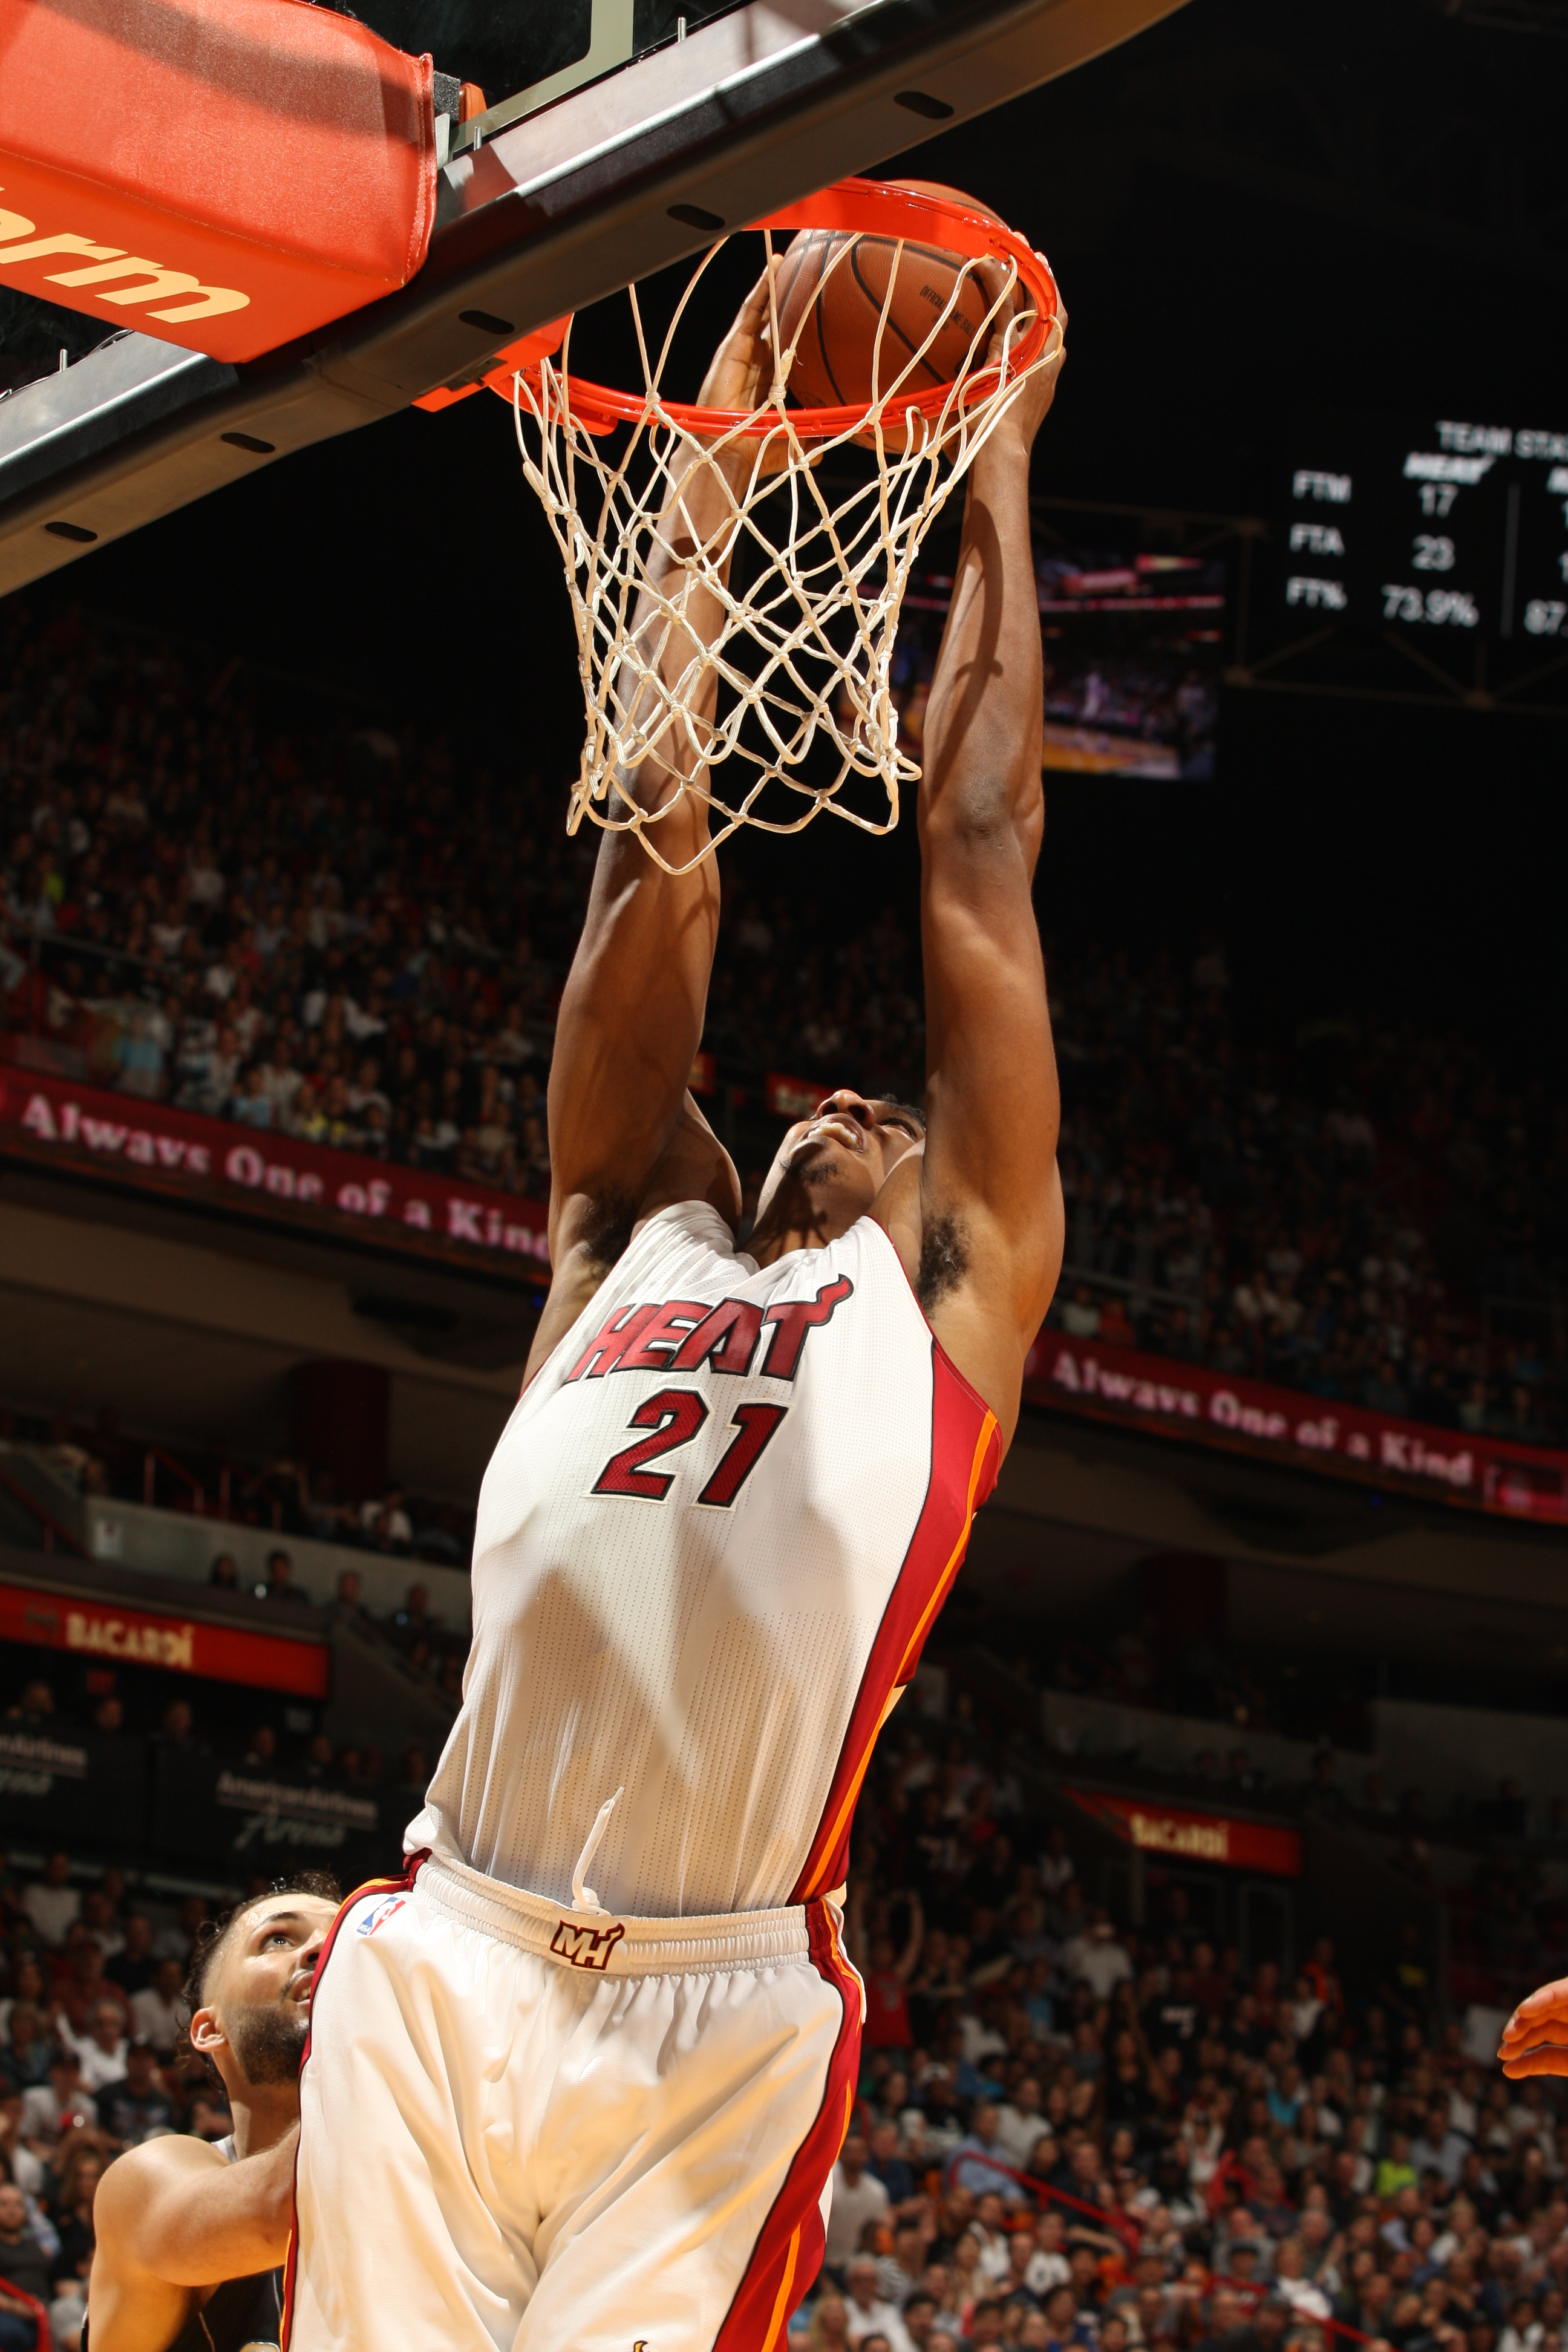 MIAMI, FL - MARCH 25:  Hassan Whiteside #21 of the Miami Heat goes to the basket against the Orlando Magic on March 25, 2016 at AmericanAirlines Arena in Miami, Florida. (Photo by Oscar Baldizon/NBAE via Getty Images)